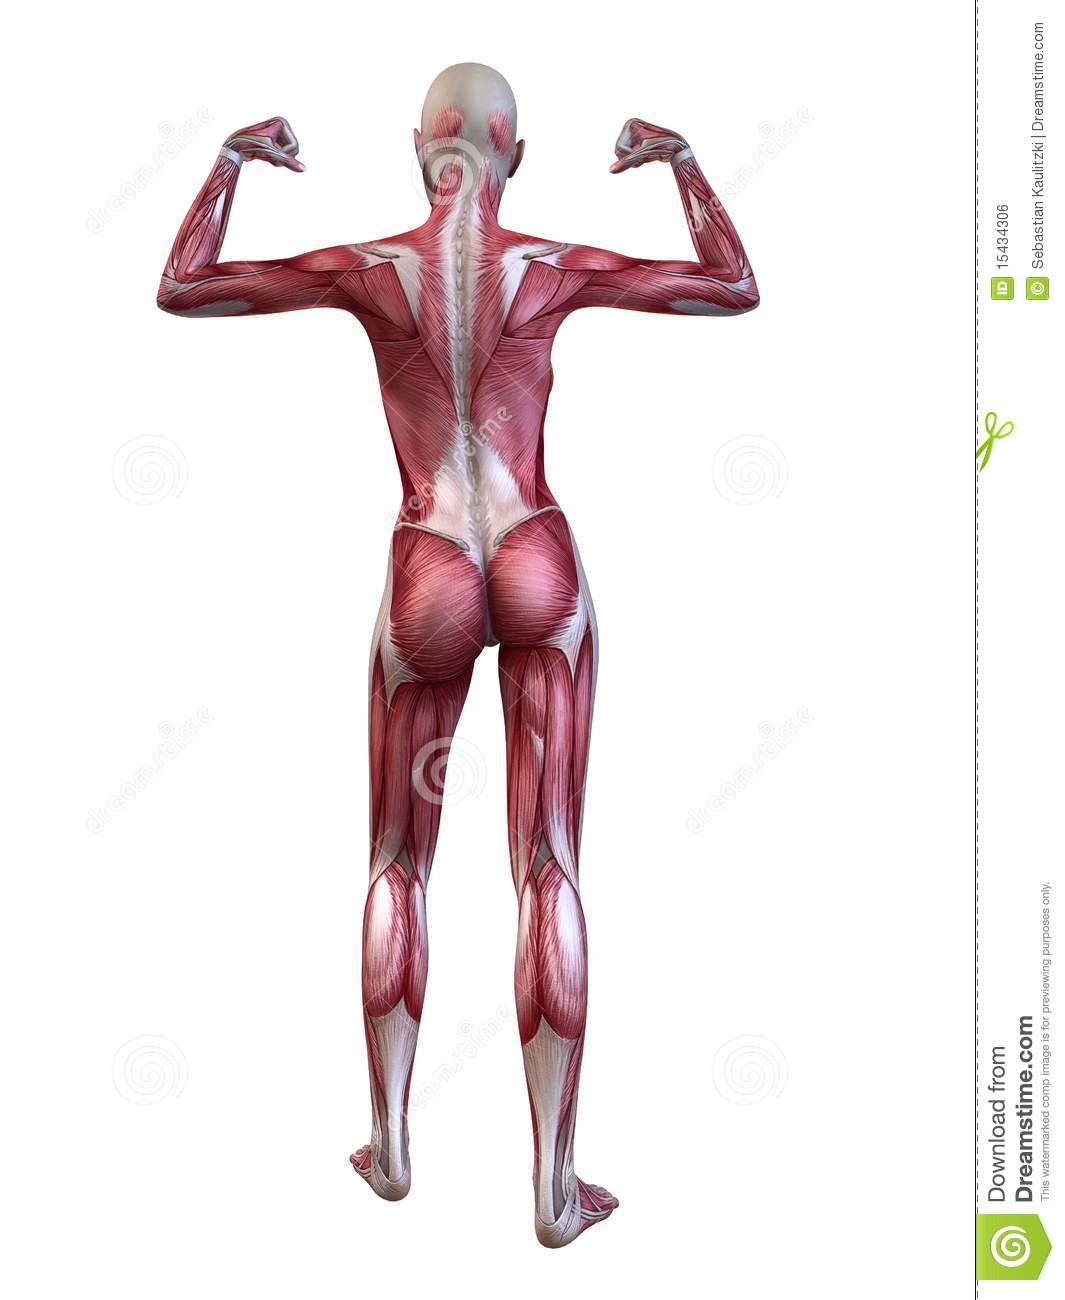 female muscular system royalty free stock image - image: 15434306, Muscles